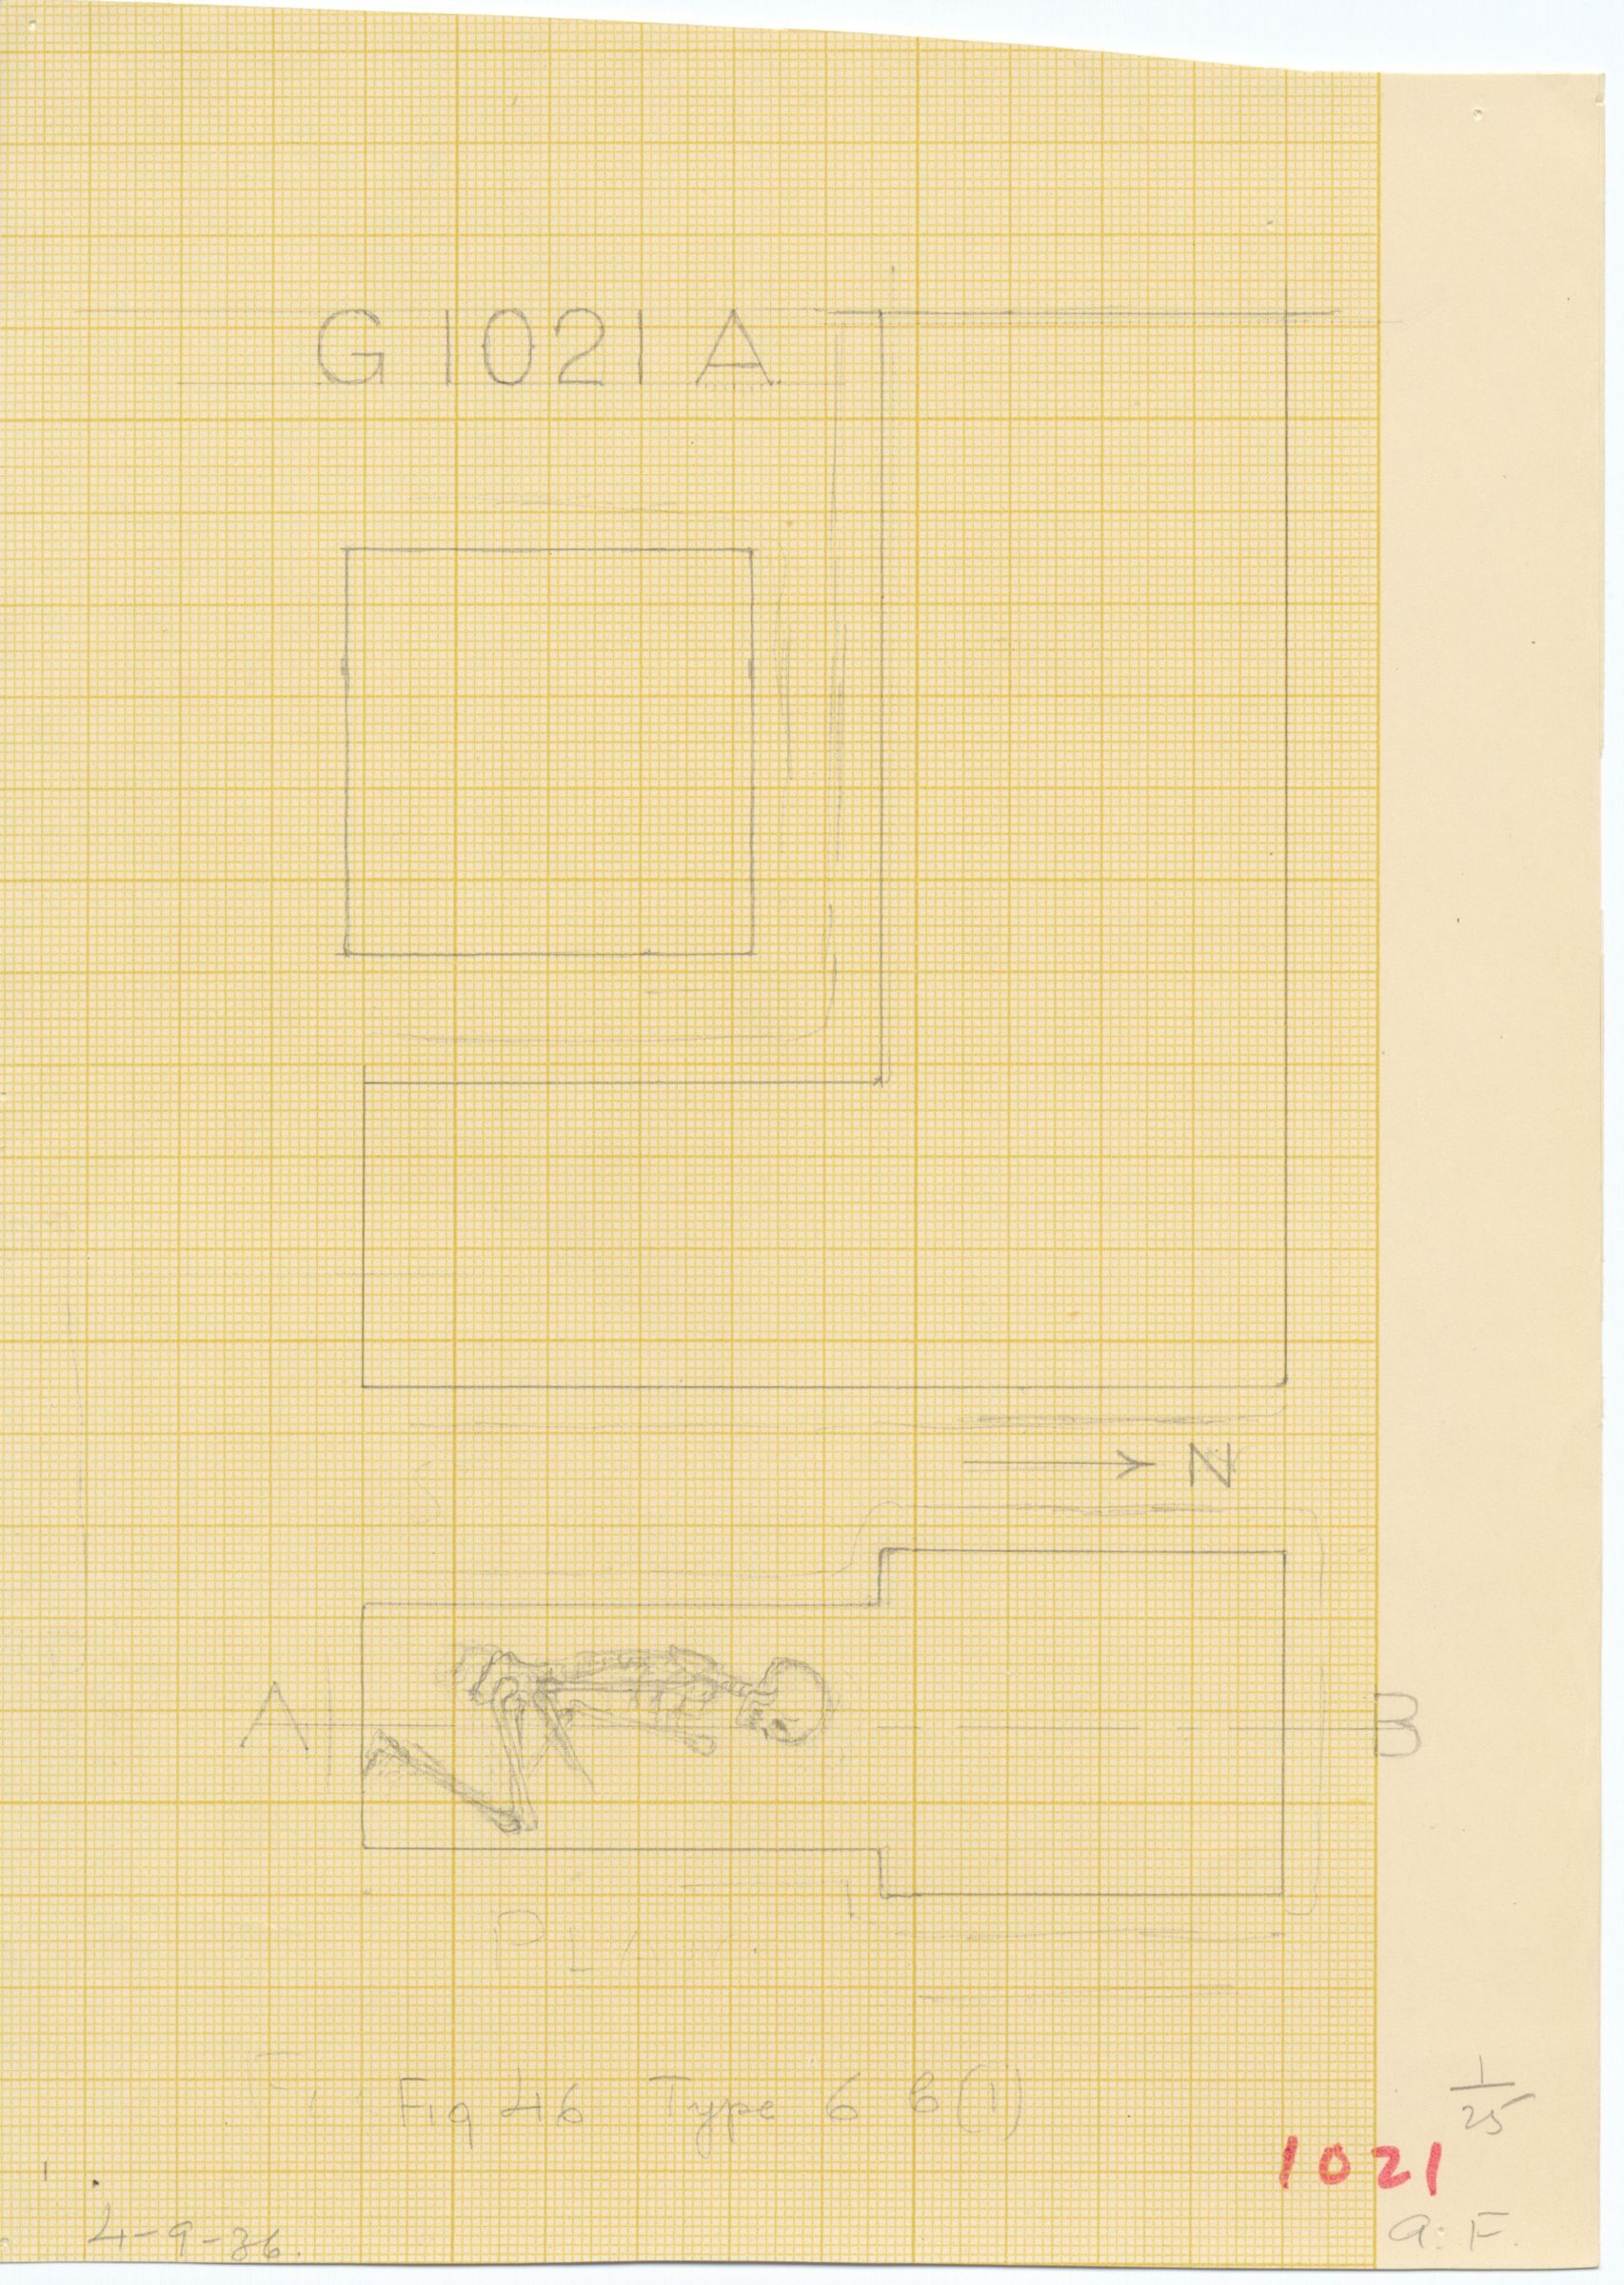 Maps and plans: G 1021, Shaft A